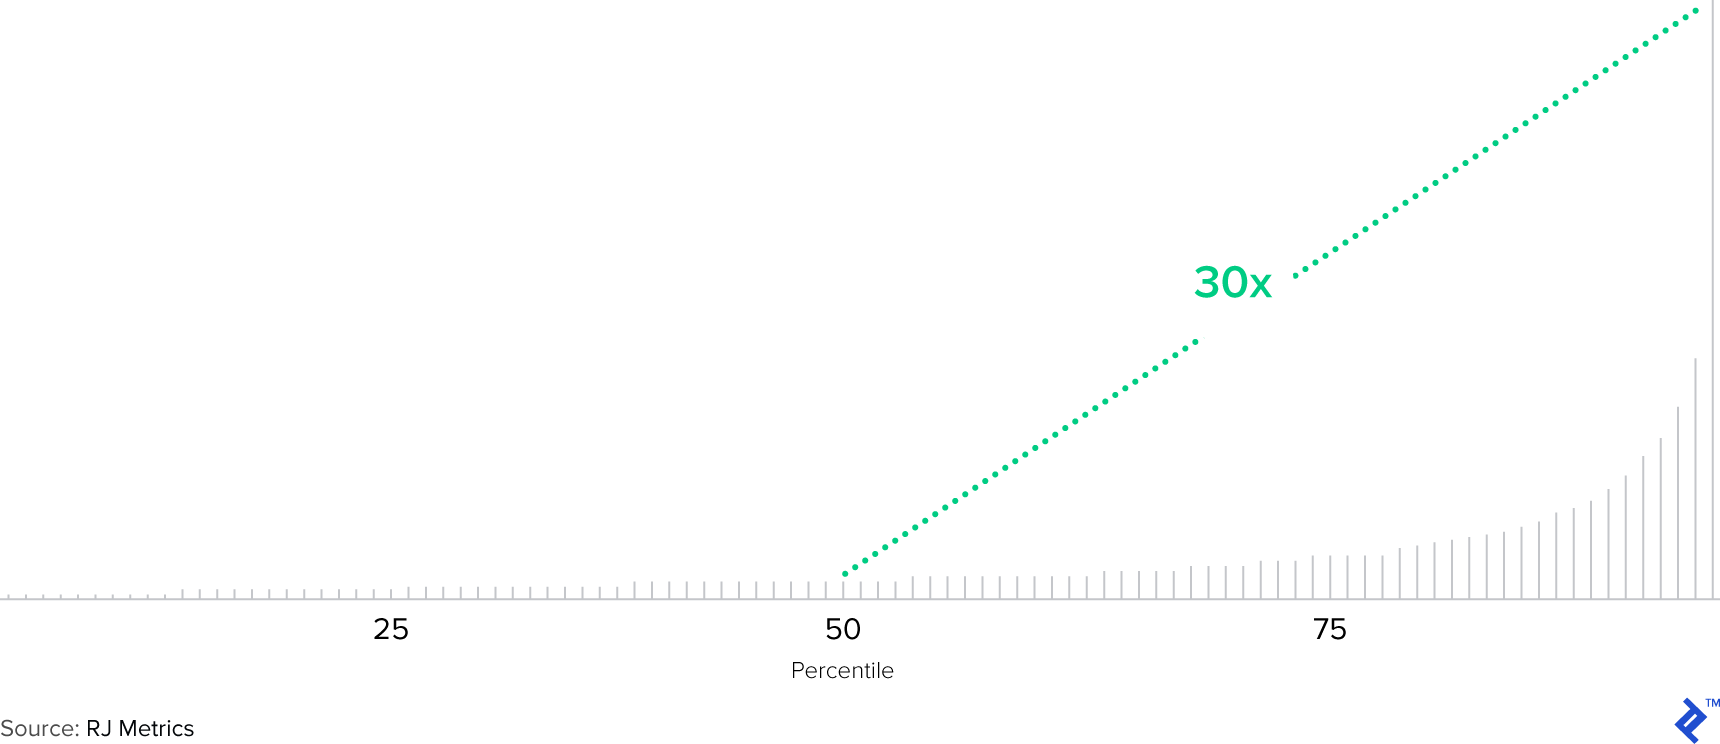 Chart 6: Customer Lifetime Value by Percentile